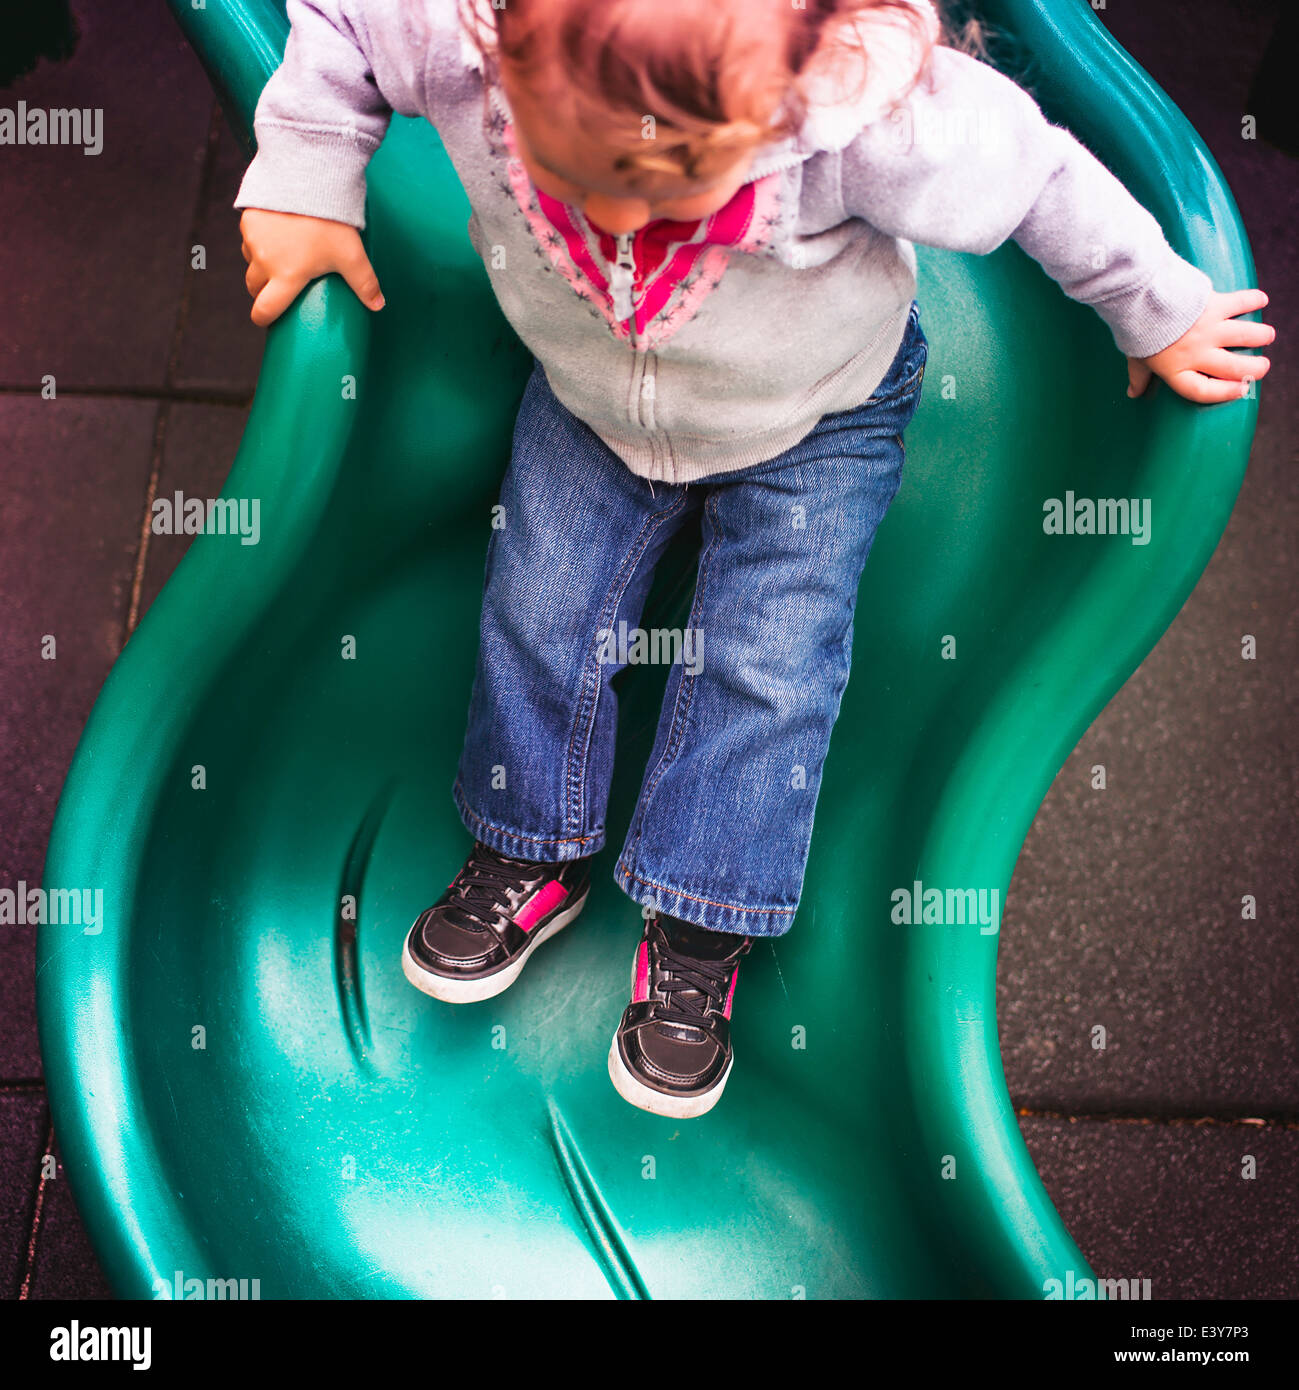 Toddler going down slide in playground - Stock Image